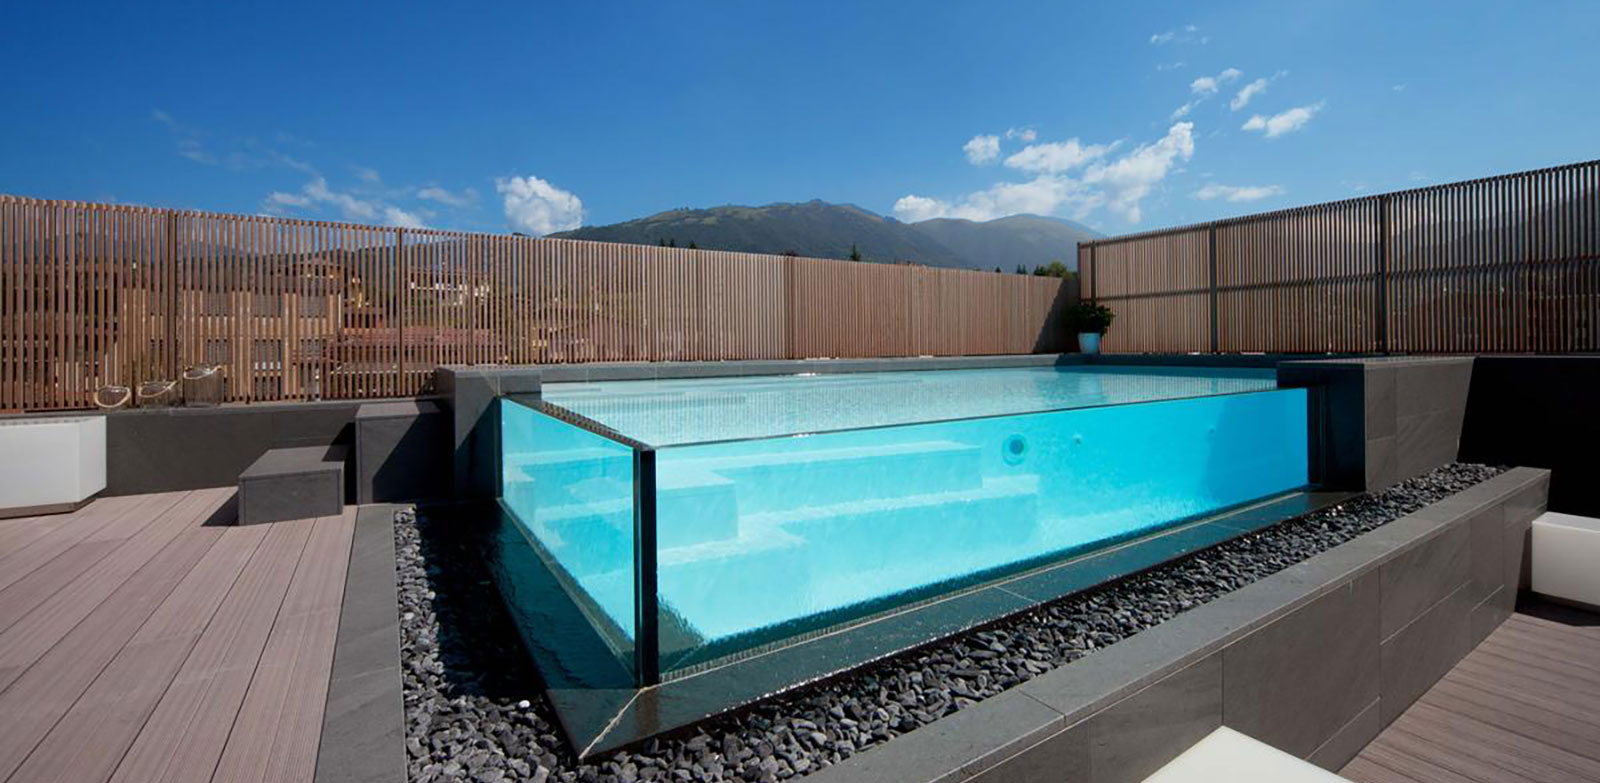 Piscine miroir toulouse design cloture piscine amovible for Piscine miroir design